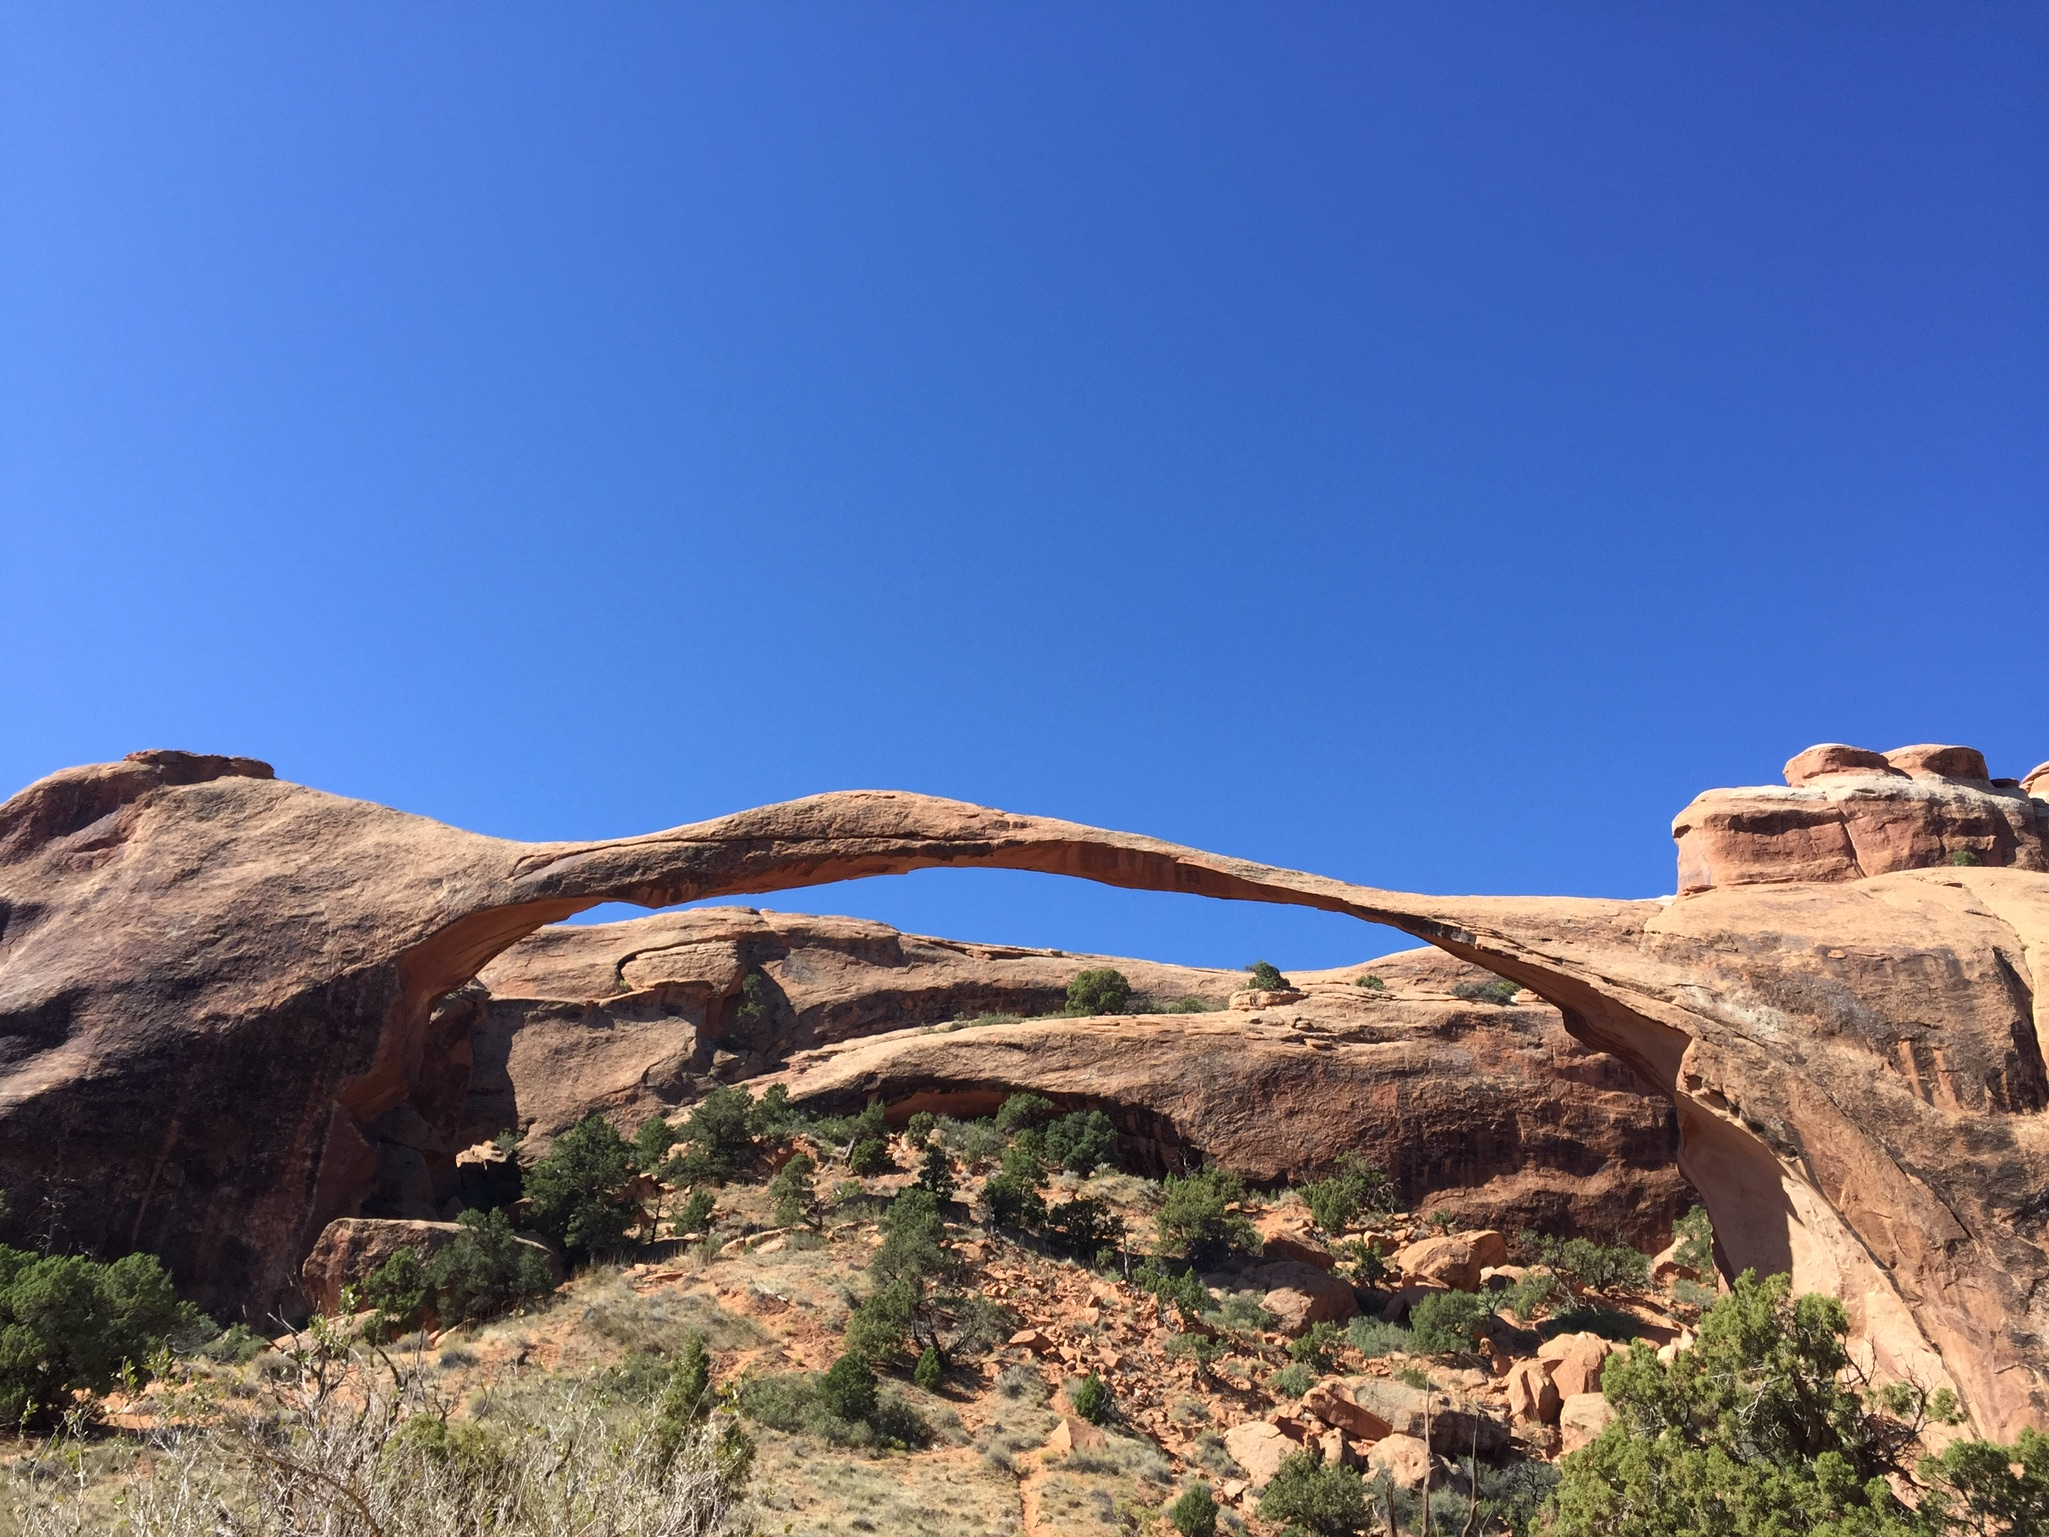 LANDSCAPE ARCH. Just one quick mile from the trailhead you will find the fifth longest recorded arch in the world, Landscape Arch. It measures at 290ft across at it's longest section. At one time you were able to stand underneath it, but on a sunny afternoon in the 90's a large slab fell causing the guests underneath to scatter. It is a powerful reminder of the changes this landscape undergoes over long periods of time or in a matter of seconds.